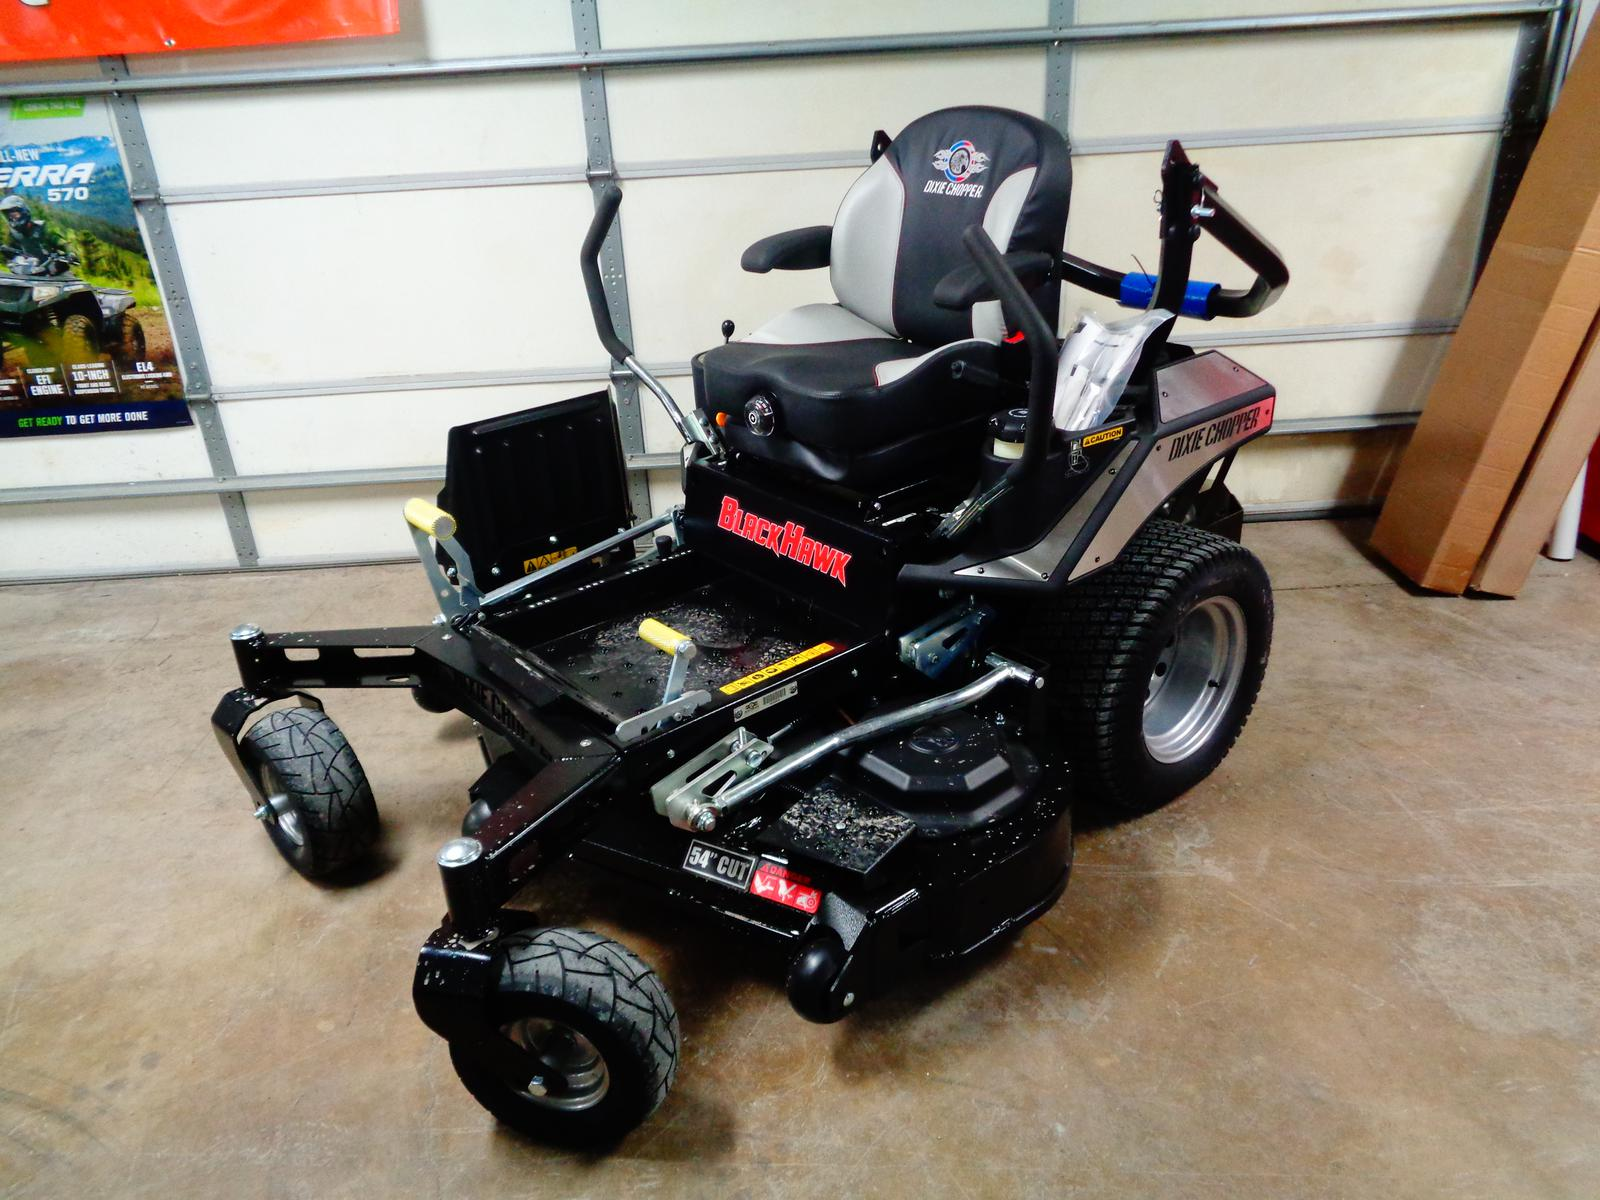 Inventory 59 Power Sports Sibley, IA (712) 758-3111